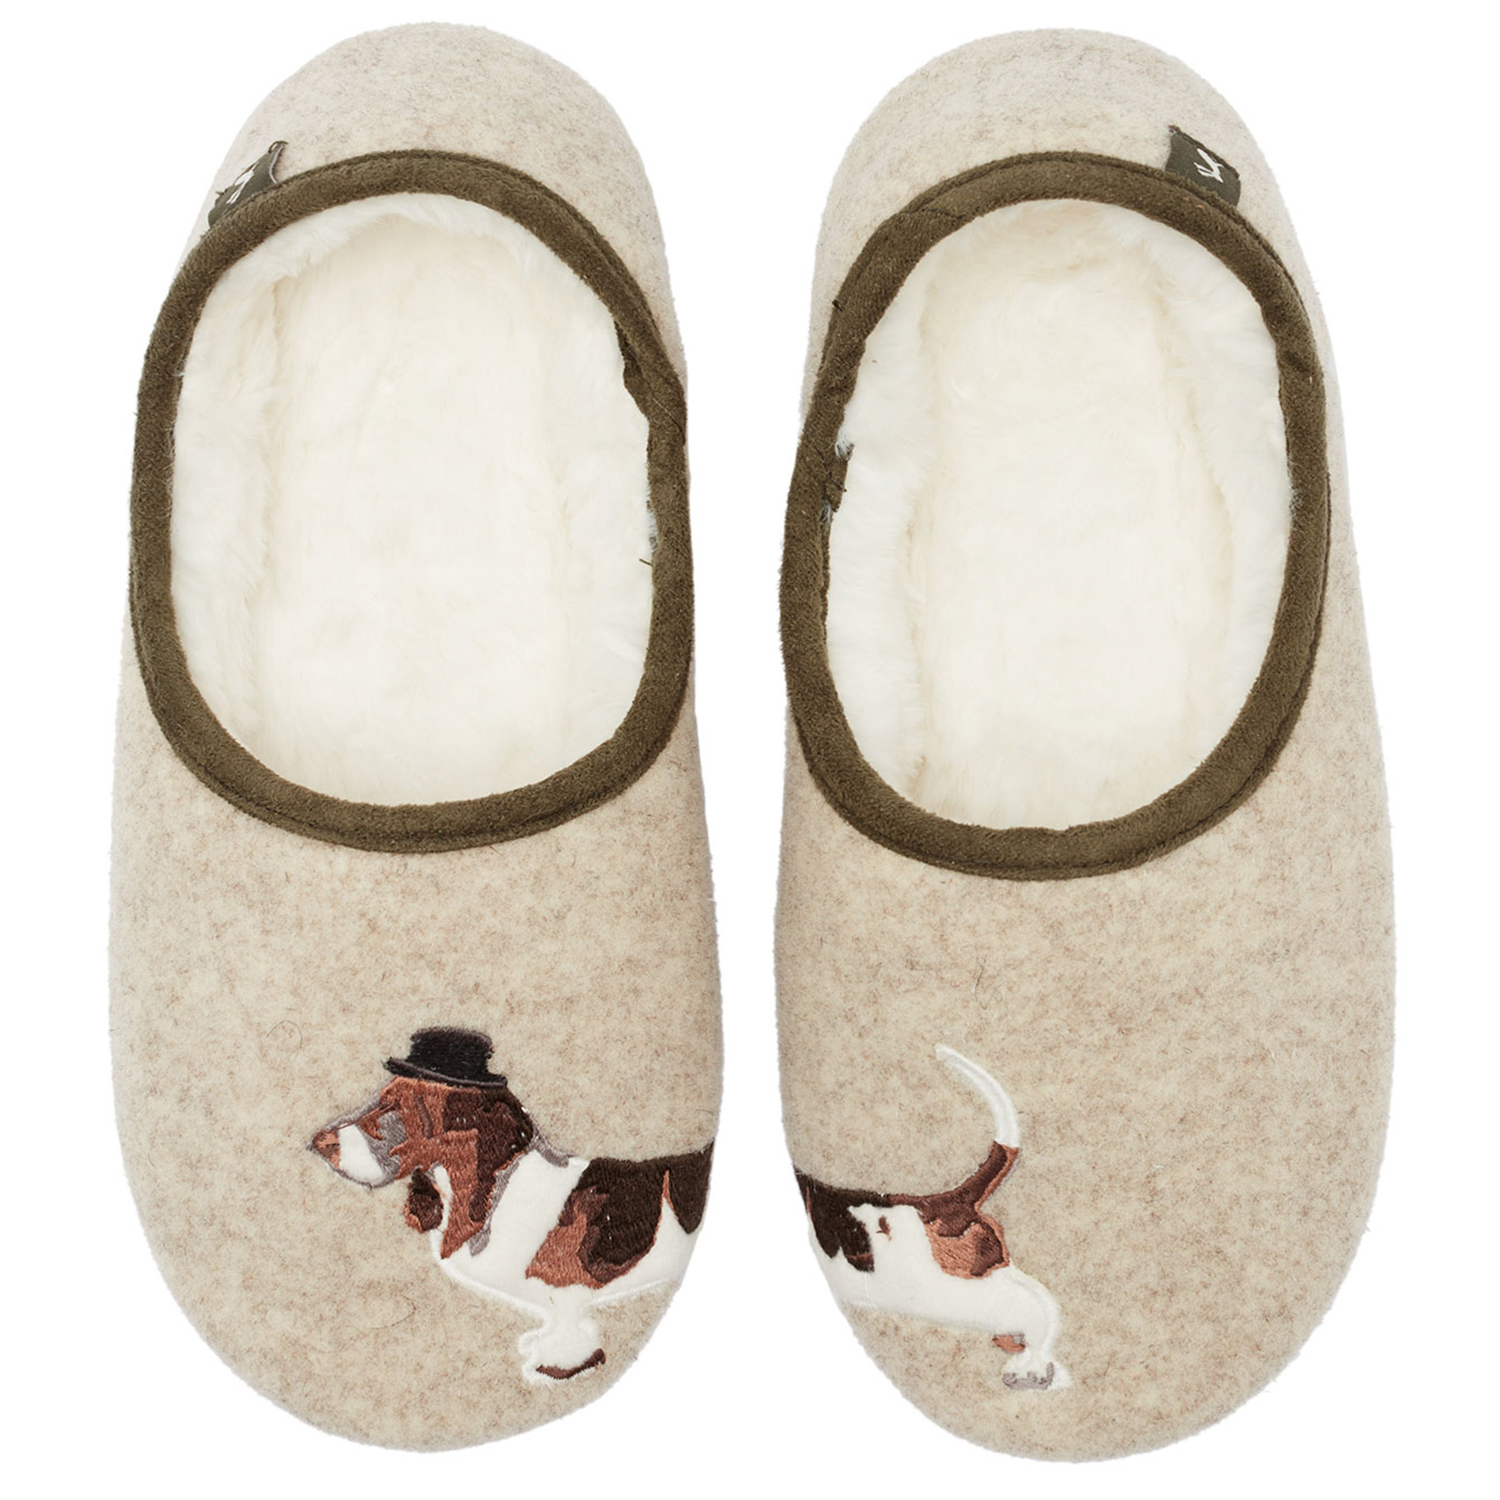 Joules Slippet Ladies Slippers from